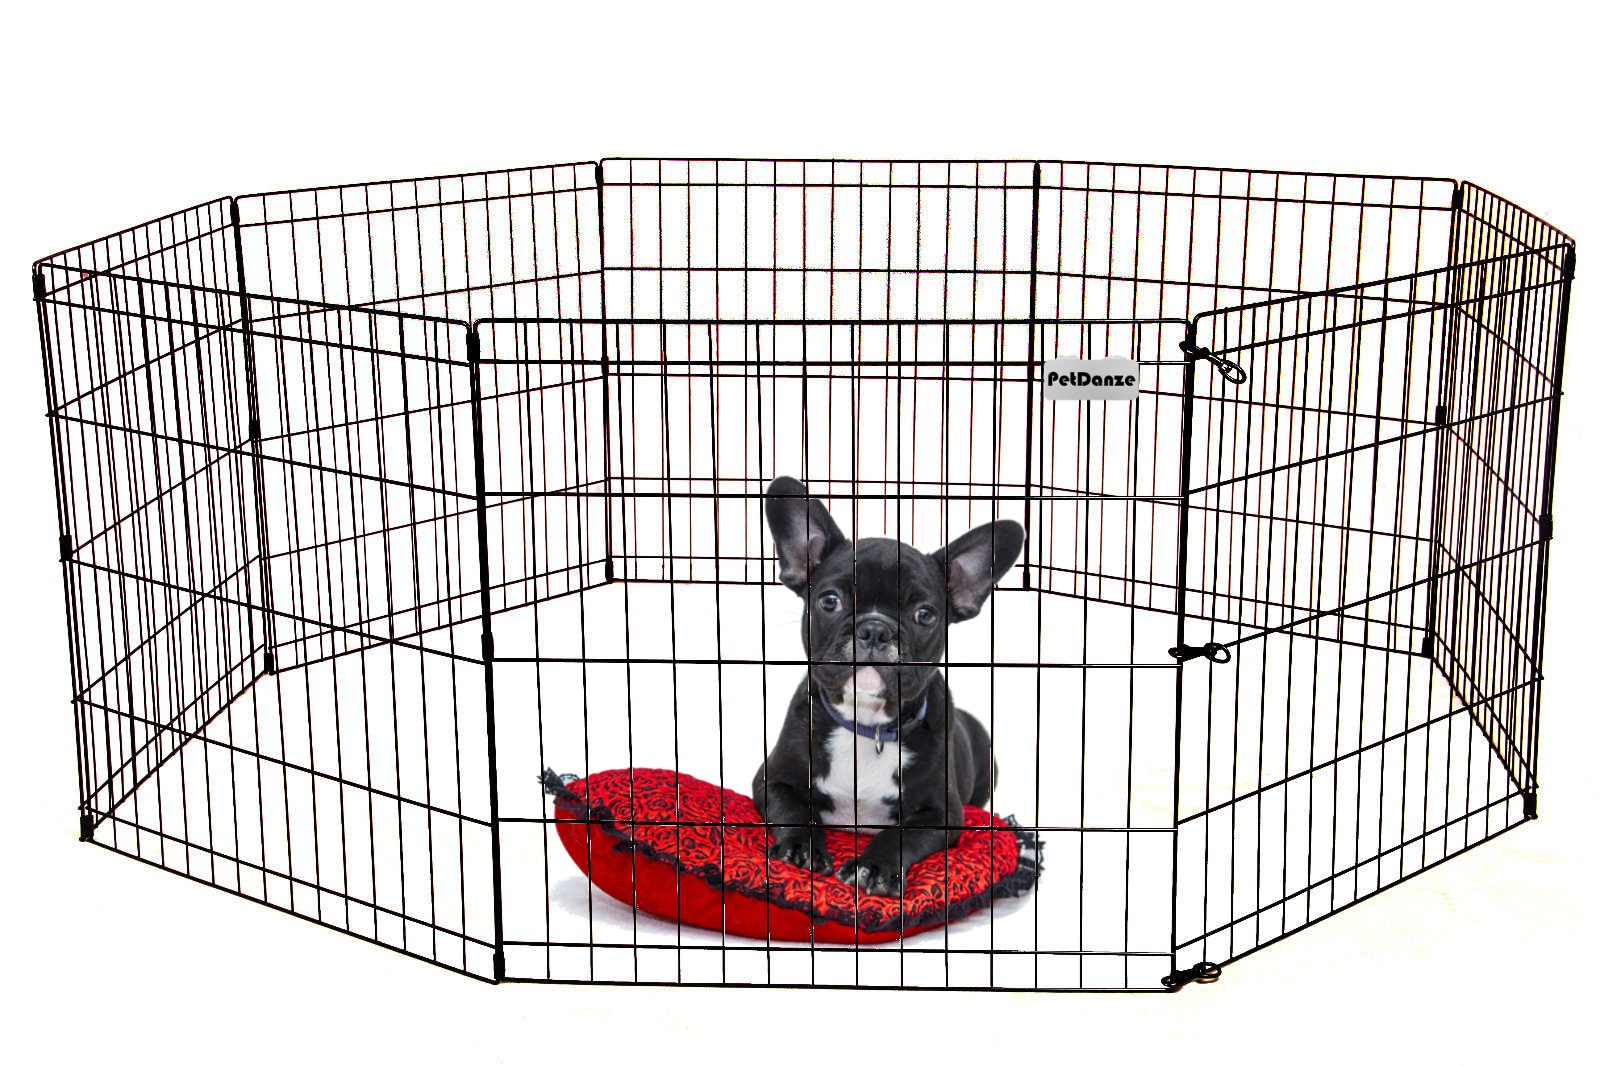 PetDanze Dog Puppy Playpen Pen 24'' Height | Indoor Outdoor Exercise Outside Play Yard | Pet Small Animal Puppies Portable Foldable Fence Enclosures | 8 Panel Metal Wire, Black